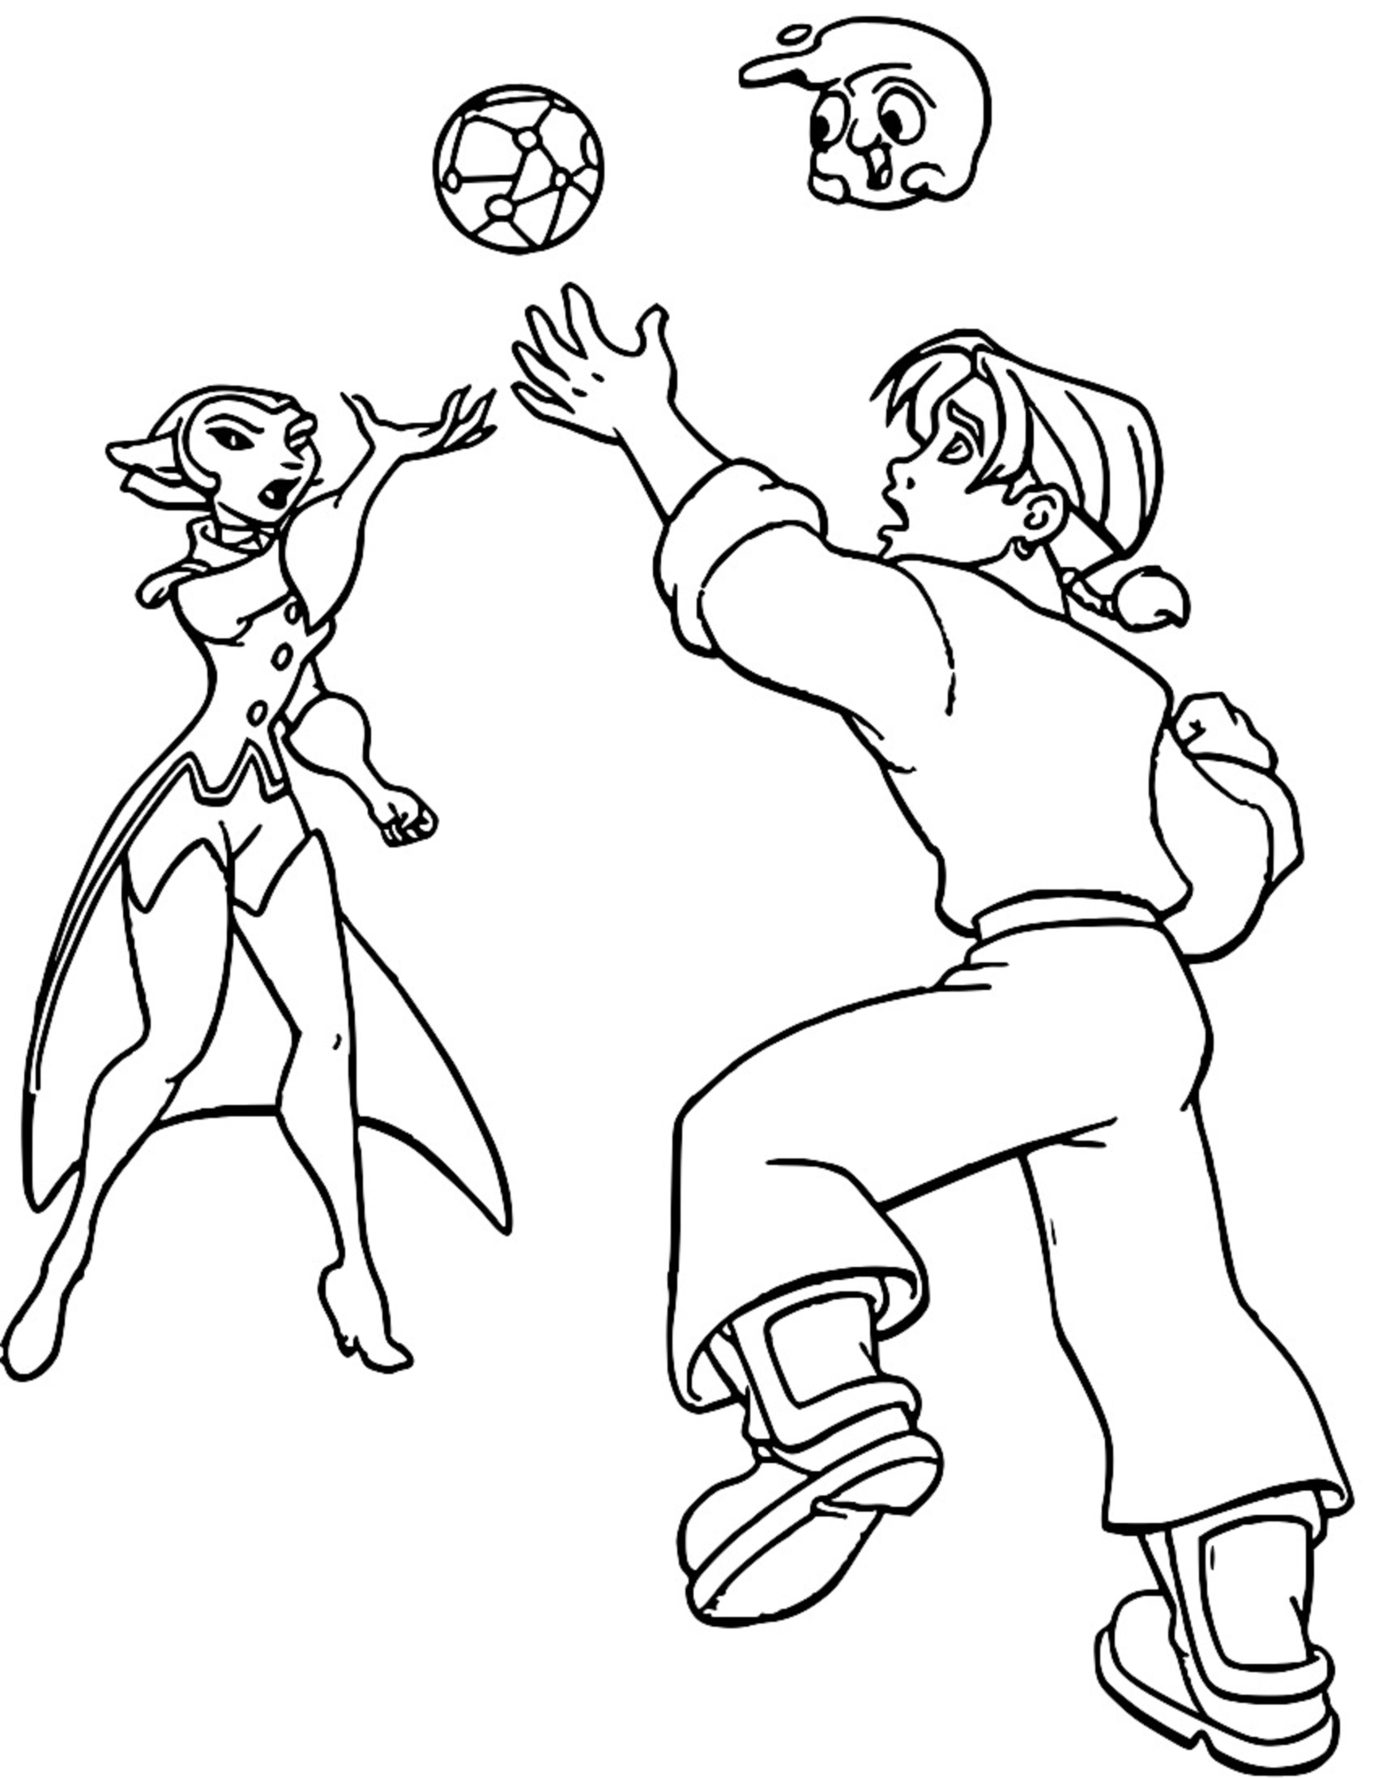 Treasure Planet im45 Coloring Pages_Cartoonized